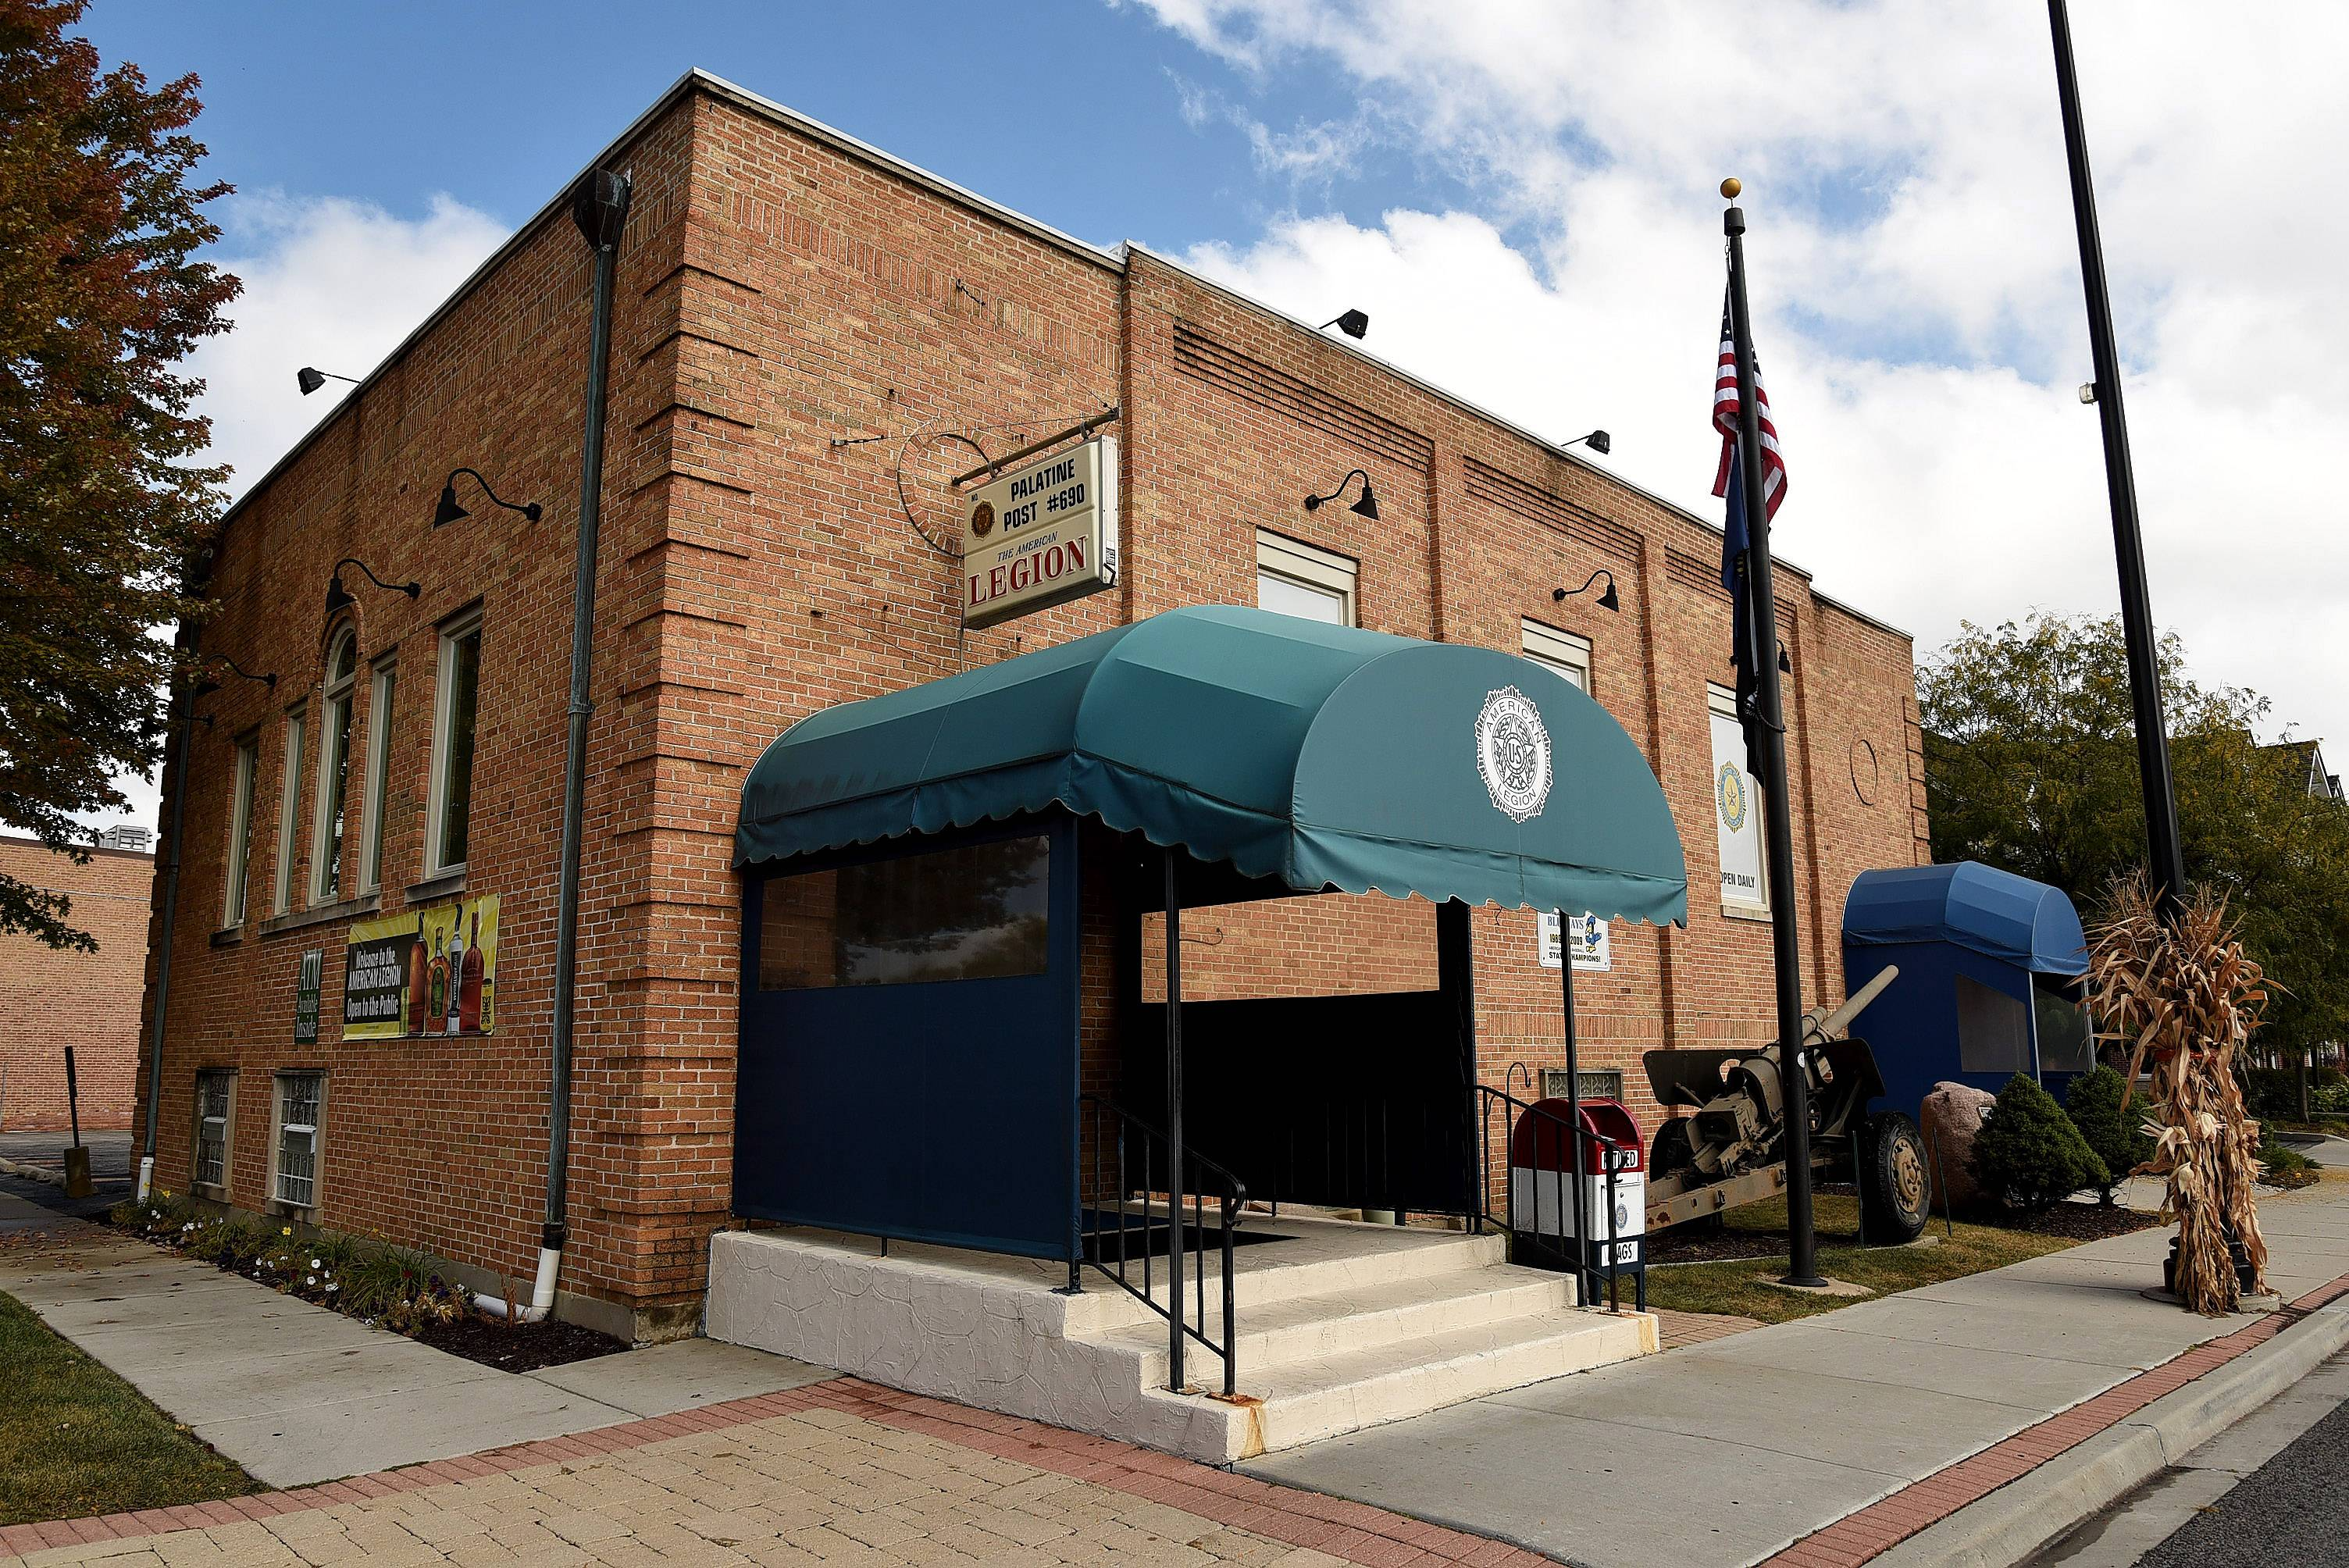 Leaders of Palatine American Legion Post 690 at 122 W. Palatine Road had expected the village council to approve their plans for outdoor seating at the post.